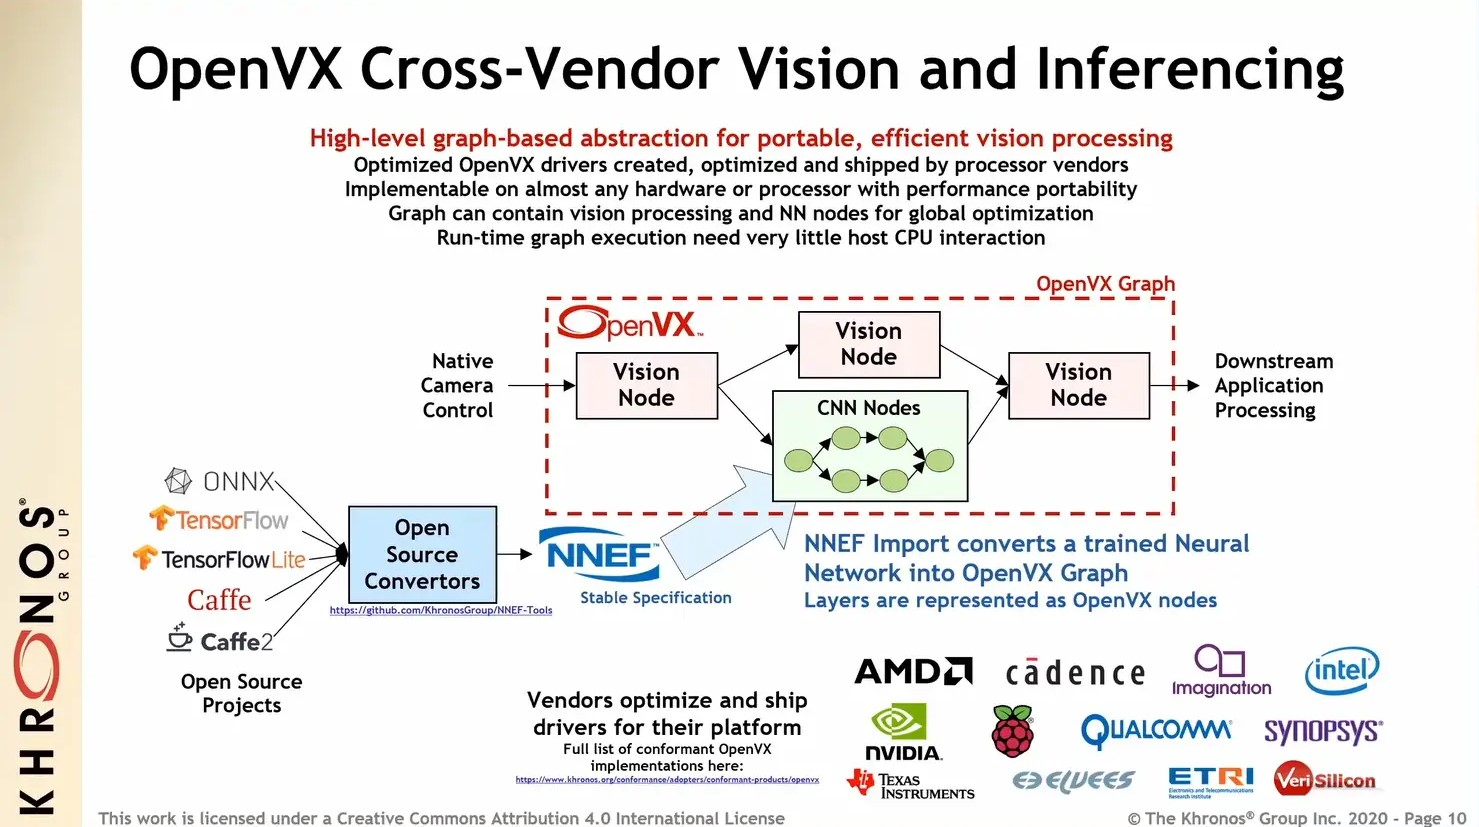 Open Interoperability Standards for Automotive Vision and Inferencing Acceleration: An Industry Overview